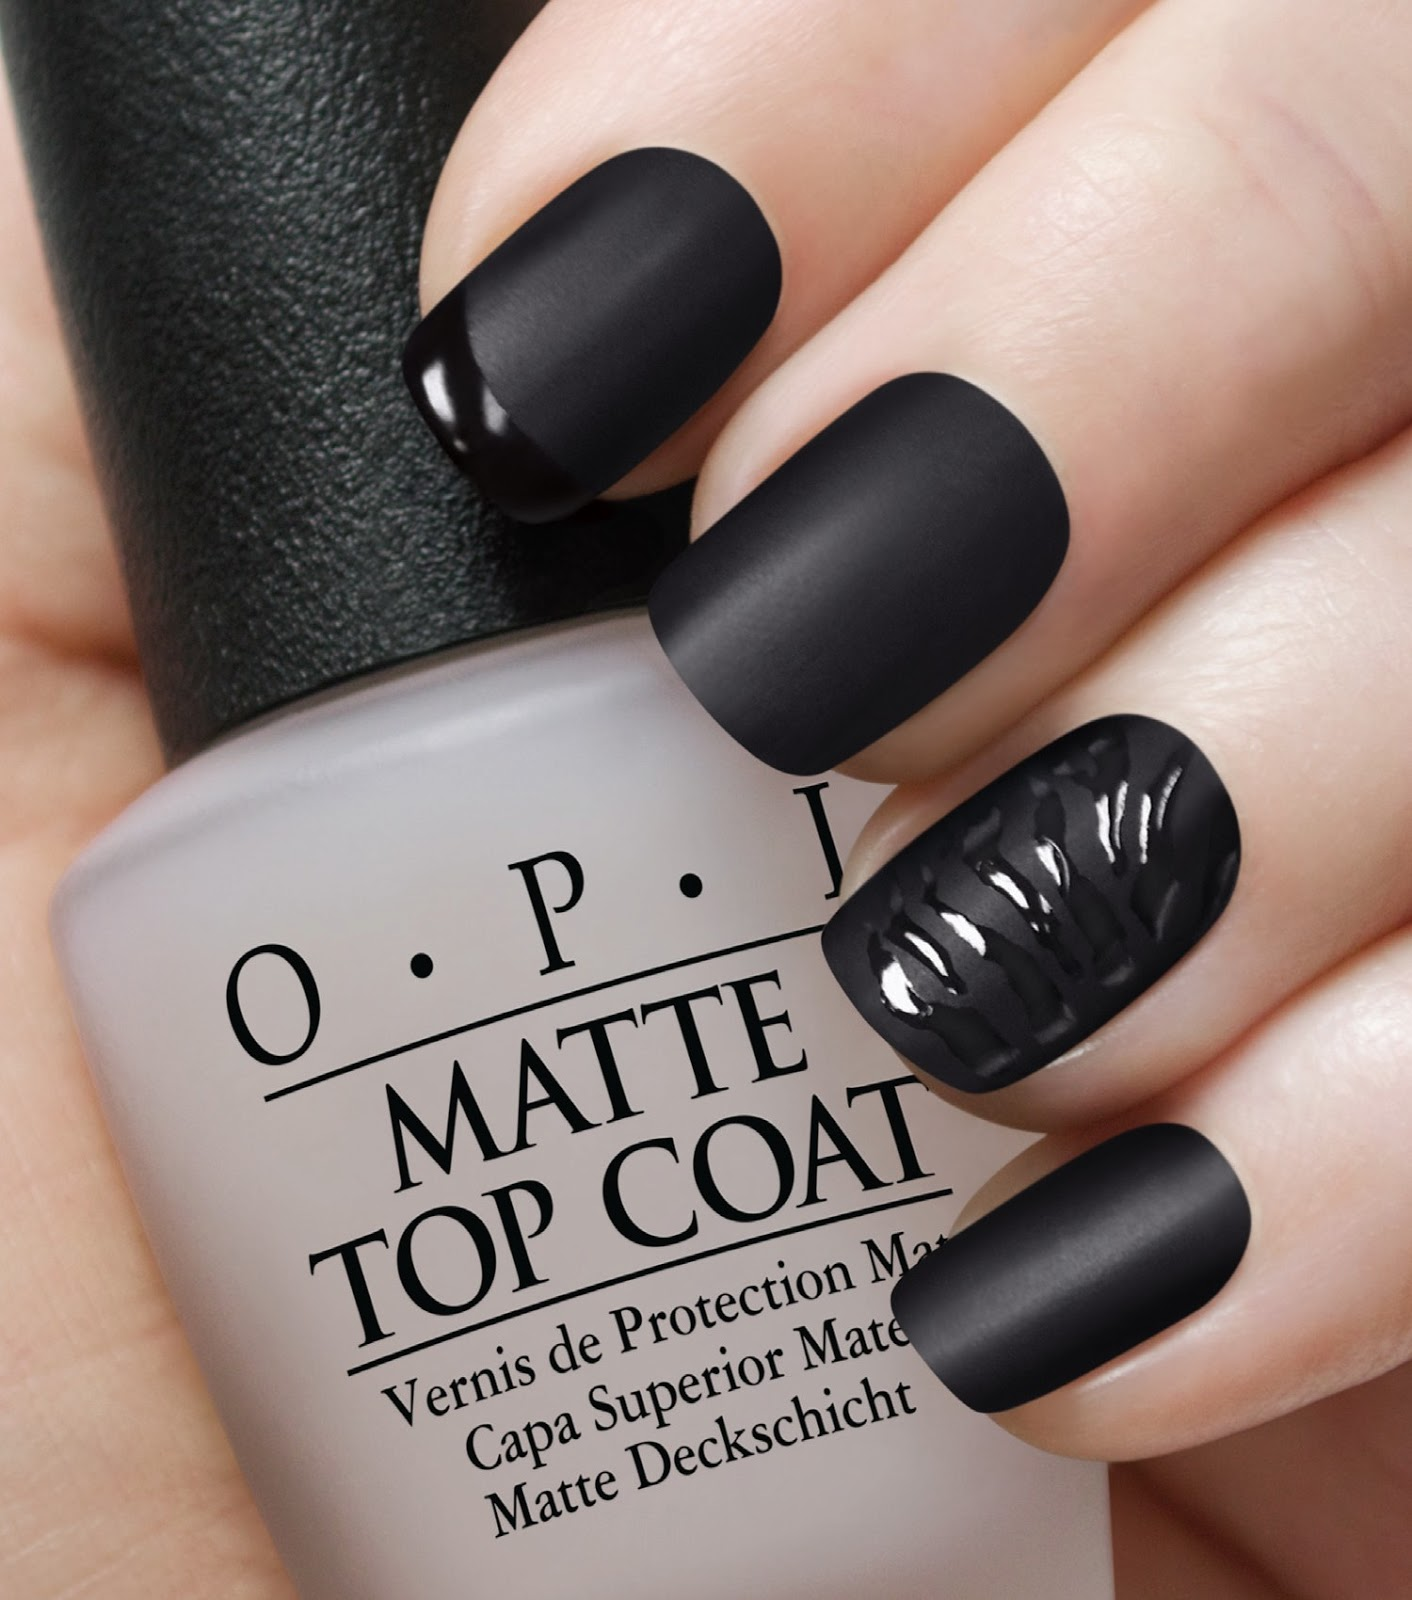 Find great deals on eBay for matte nail polish top coat. Shop with confidence.